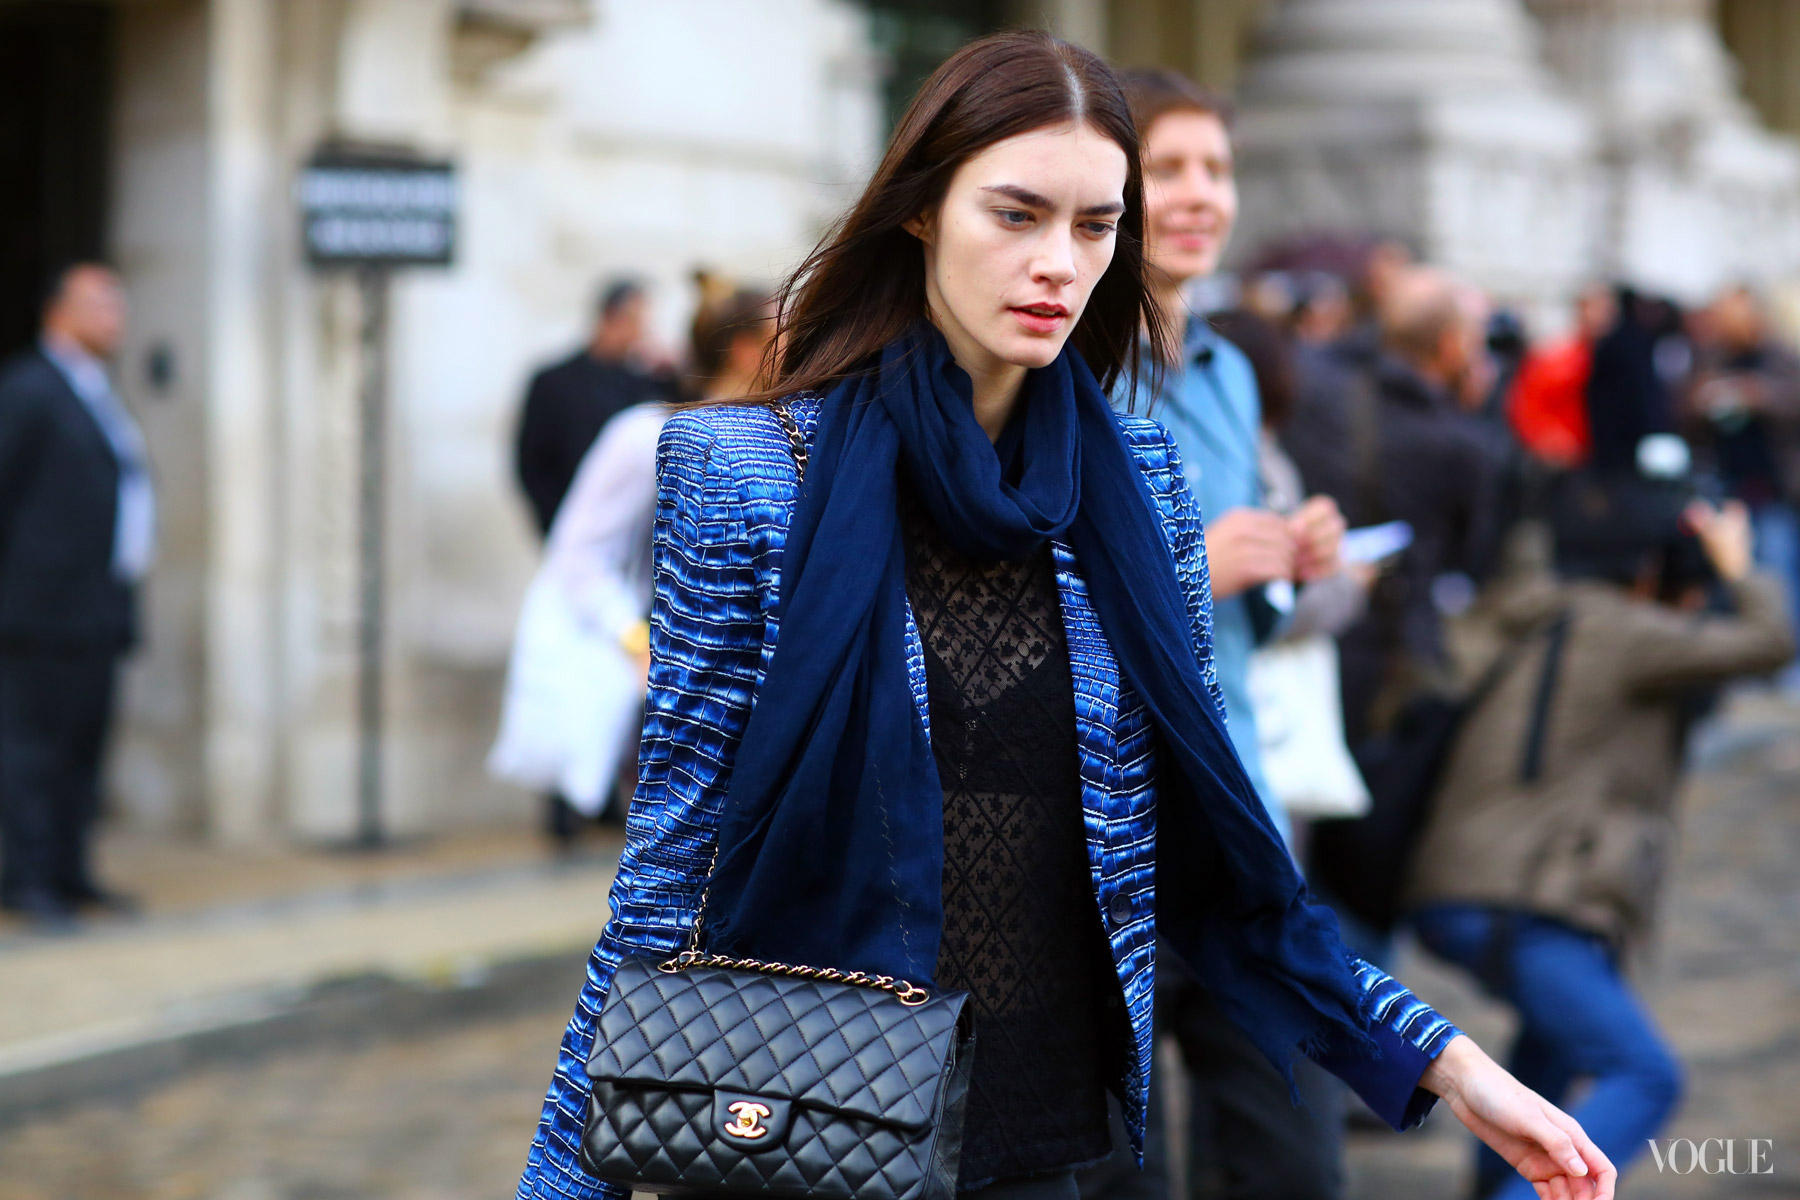 Ever wondered why Chanel bags are so expensive? Let me help you understand why